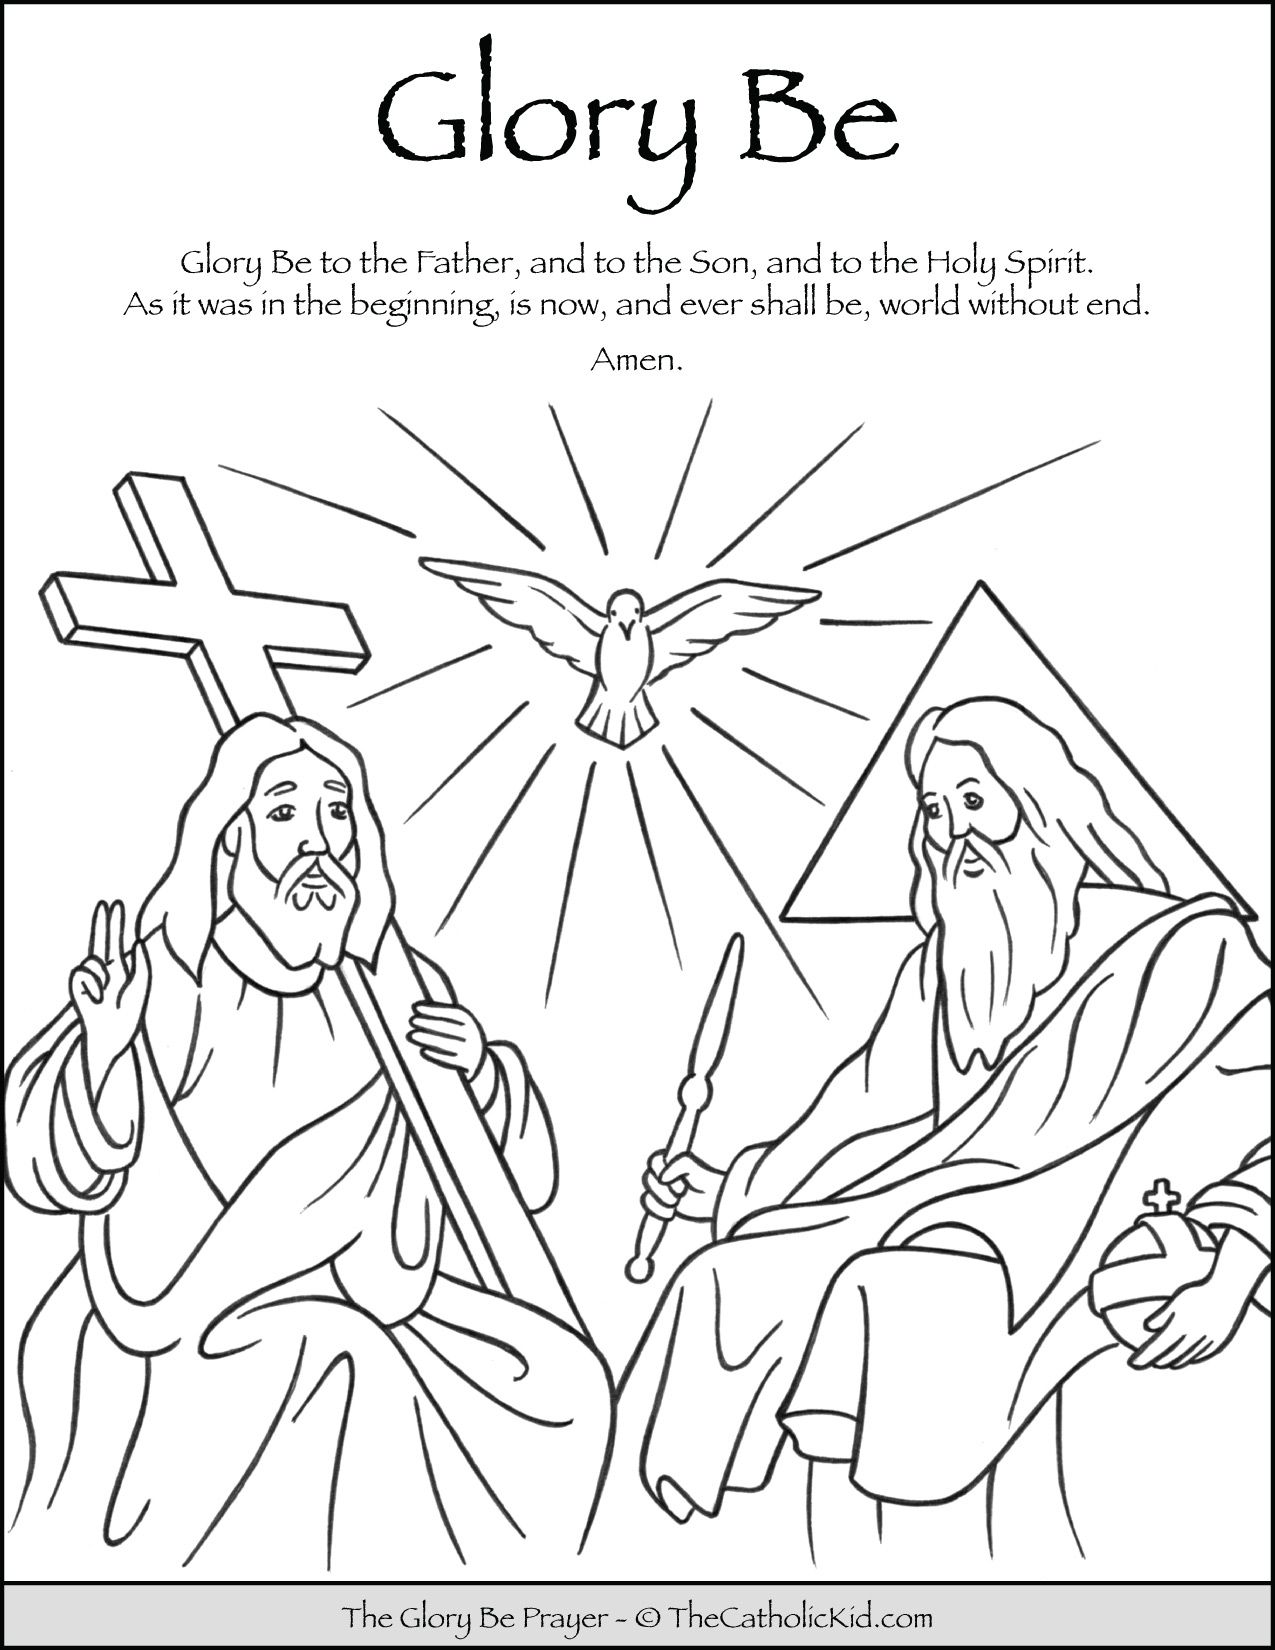 Glory Be Prayer Coloring Page Thecatholickid Com Glory Be Prayer Catholic Coloring Mothers Day Coloring Pages